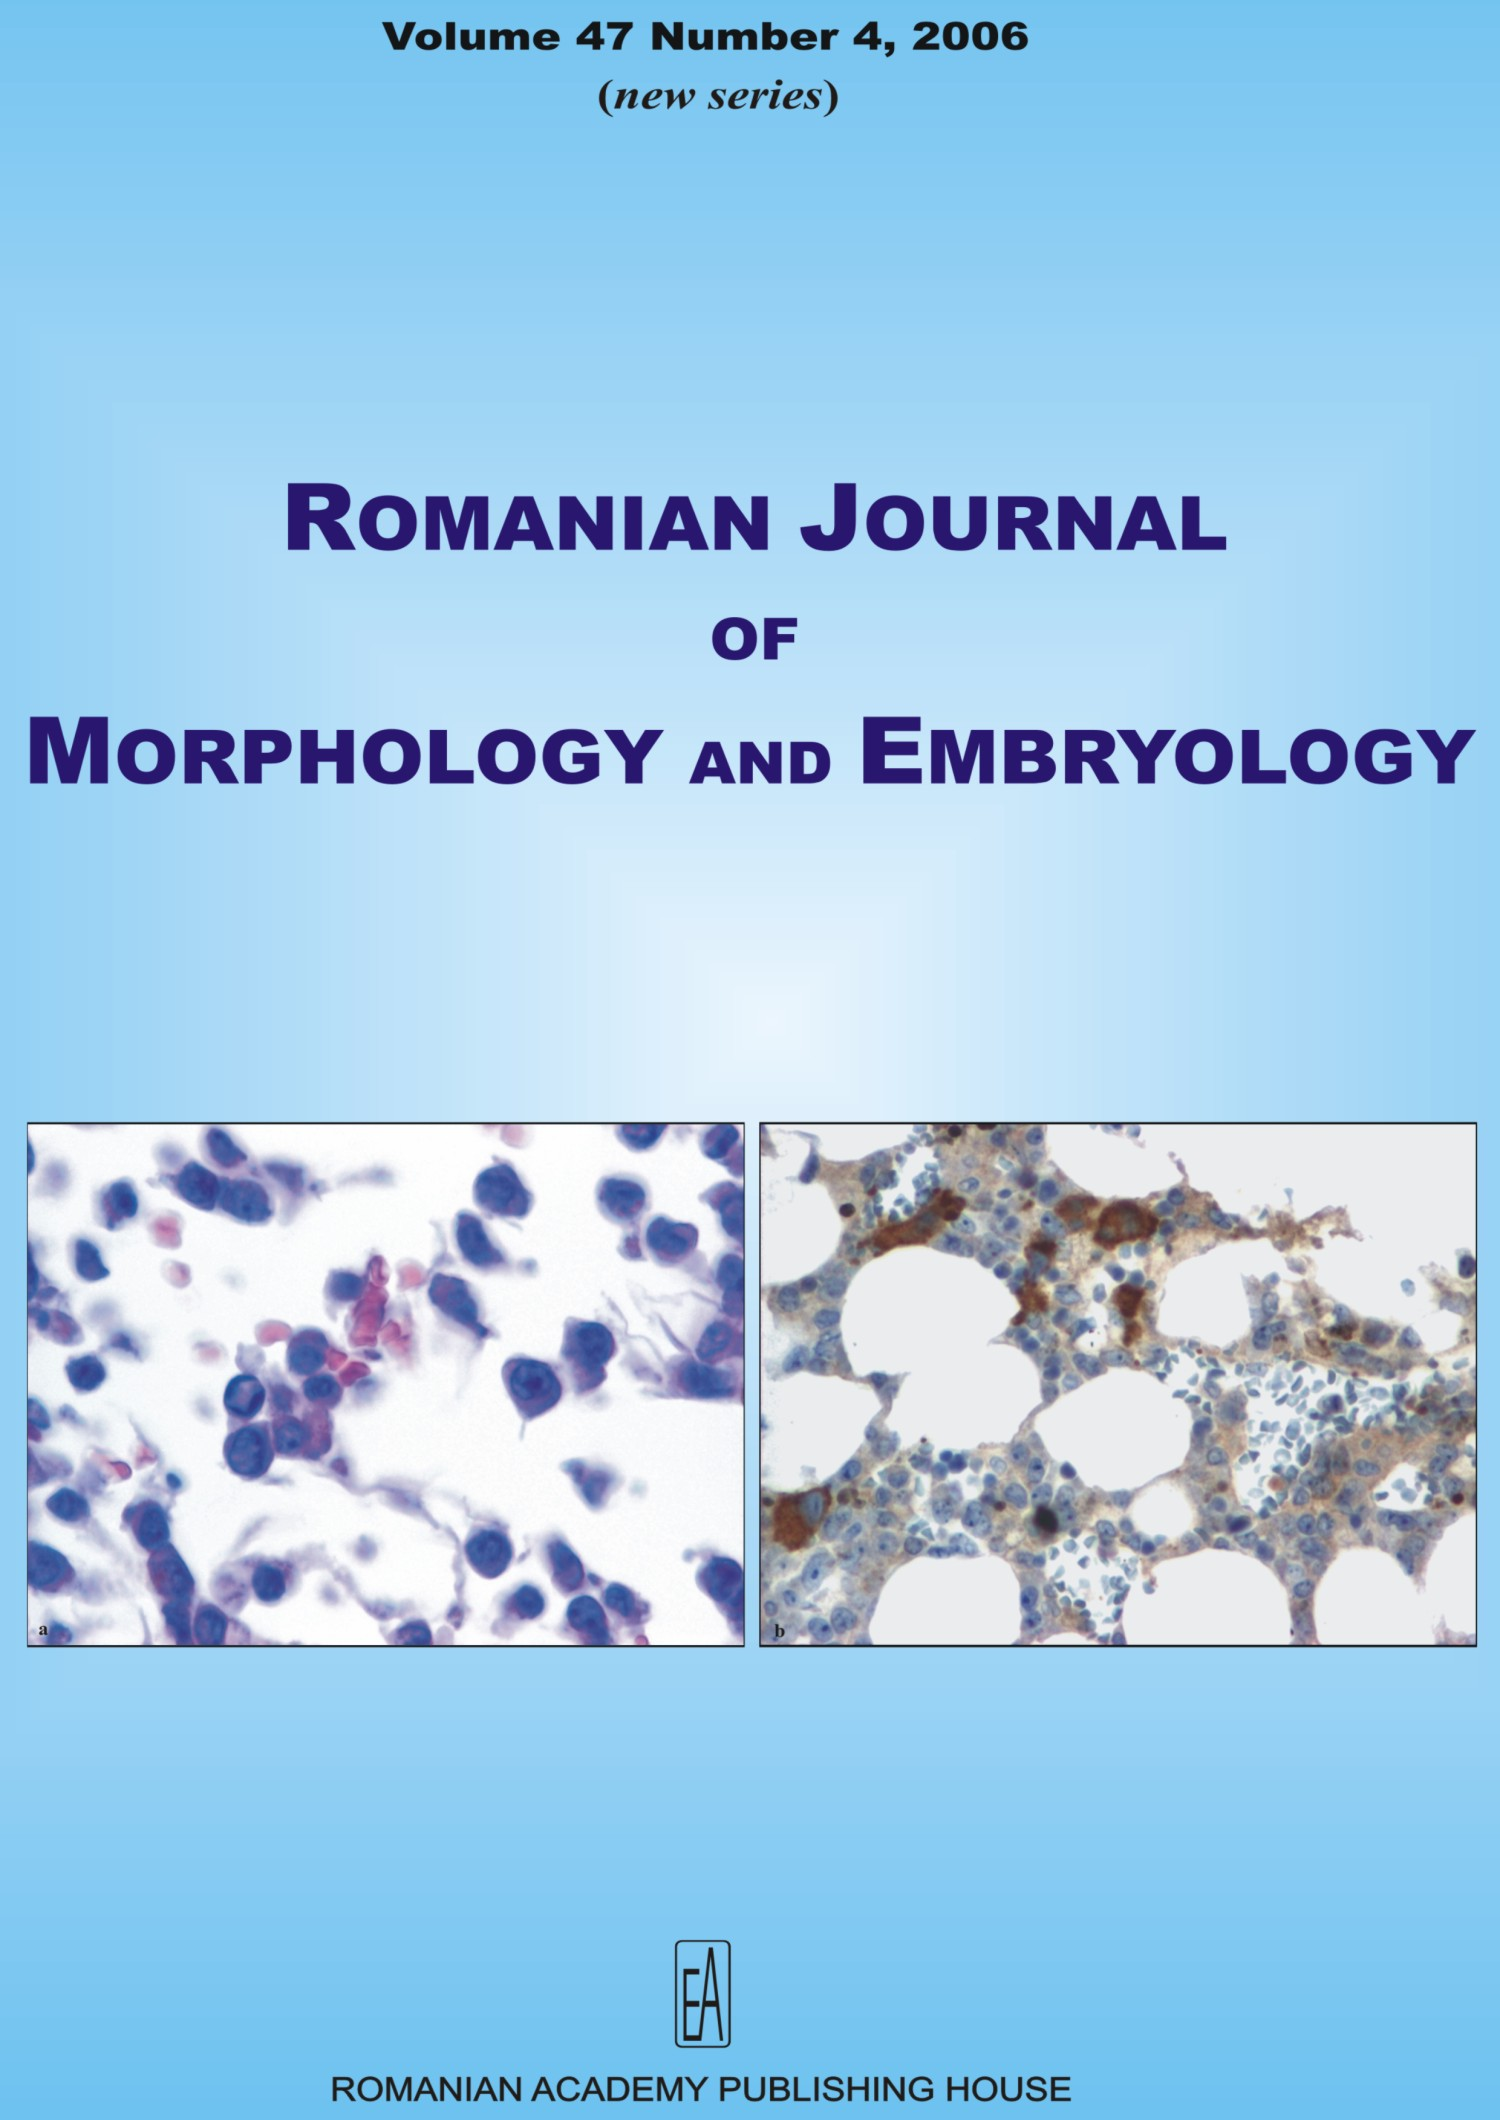 Romanian Journal of Morphology and Embryology, vol. 47 no. 4, 2006